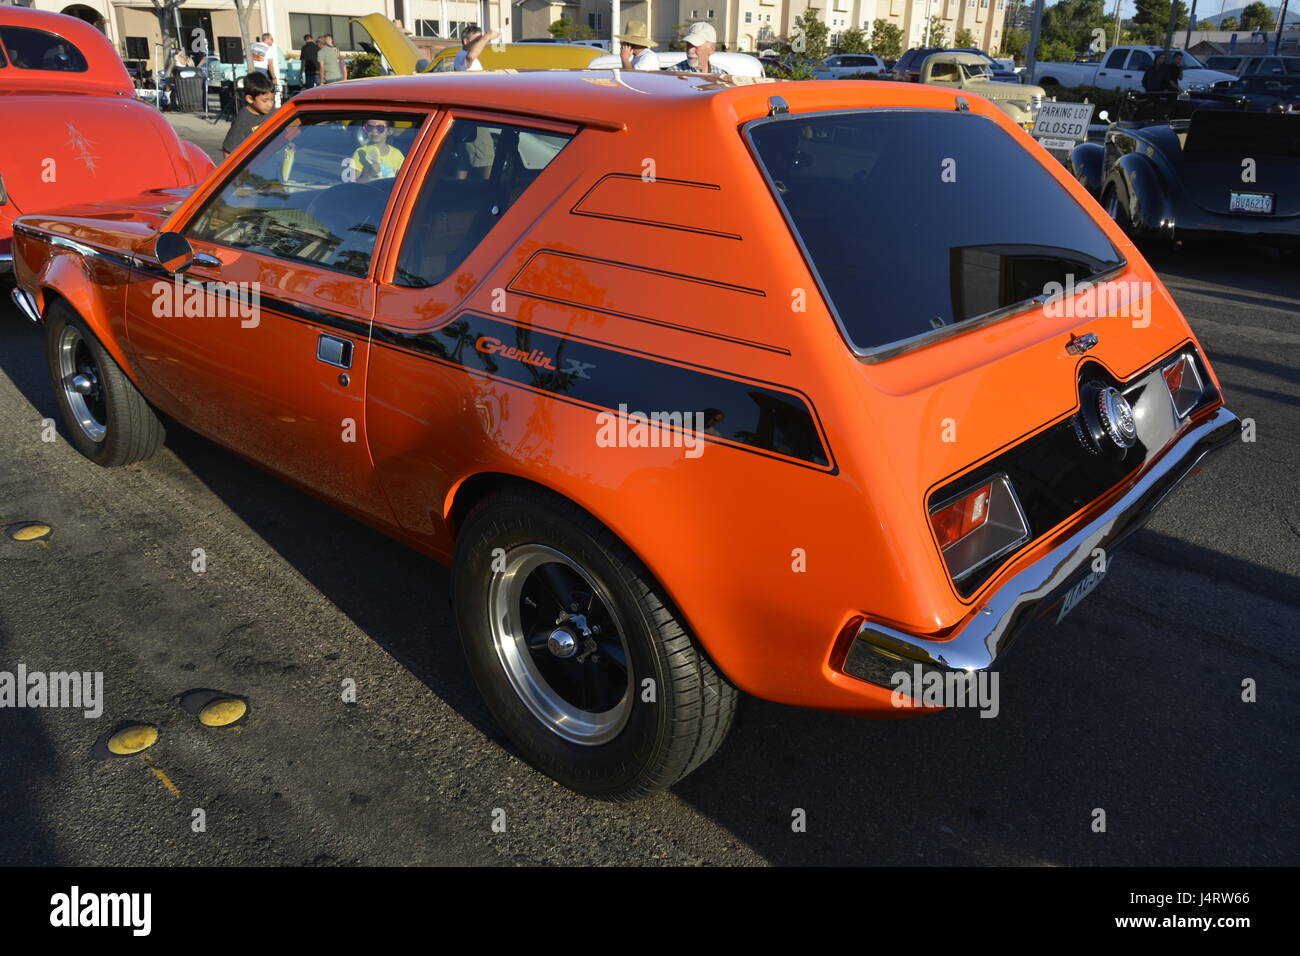 Gremlin, 1975 American Motors car, hatchback, 2 doors, orange. - Stock Image